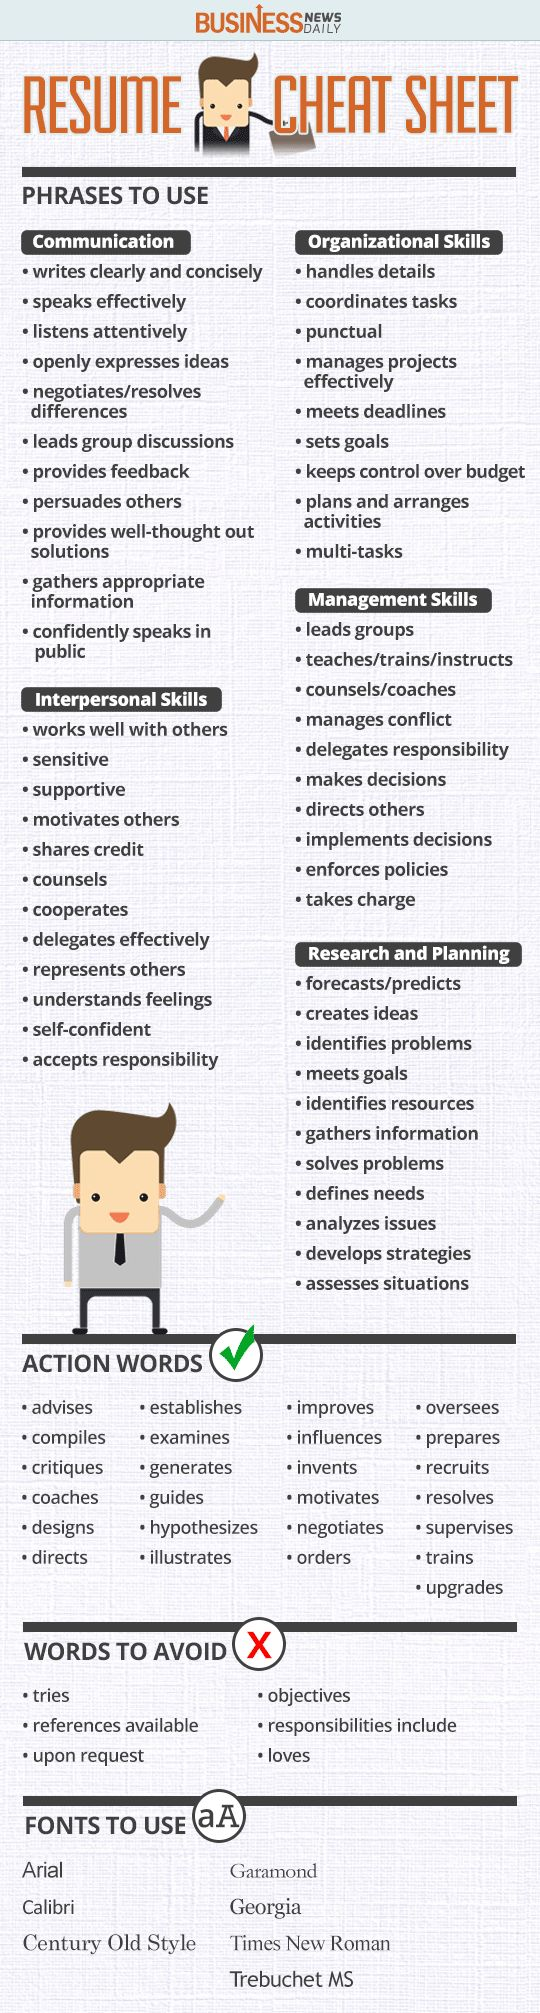 Opposenewapstandardsus  Fascinating  Ideas About Resume On Pinterest  Cv Format Resume Cv And  With Gorgeous Resume Cheat Sheet Infographic Andrews Almost Done With A Complete Unit On Employment Which With Beauteous Adobe Resume Also Agile Project Manager Resume In Addition Technical Support Engineer Resume And Resume For Nurse Practitioner As Well As Music Resumes Additionally Sap Mm Resume From Pinterestcom With Opposenewapstandardsus  Gorgeous  Ideas About Resume On Pinterest  Cv Format Resume Cv And  With Beauteous Resume Cheat Sheet Infographic Andrews Almost Done With A Complete Unit On Employment Which And Fascinating Adobe Resume Also Agile Project Manager Resume In Addition Technical Support Engineer Resume From Pinterestcom